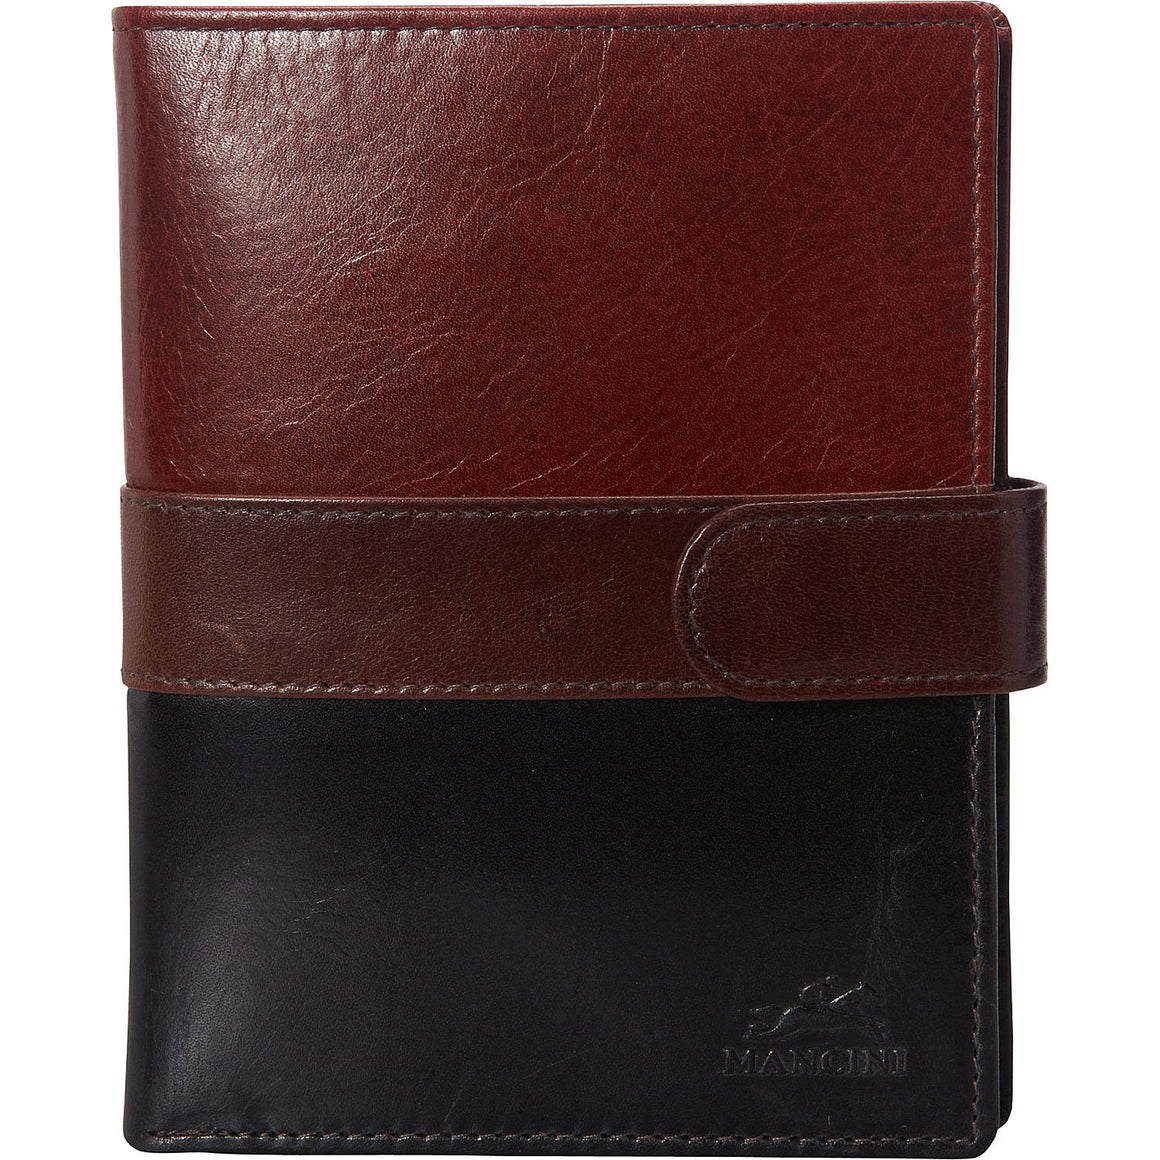 Mancini Leather Nevada RFID Secure Passport Travel Wallet